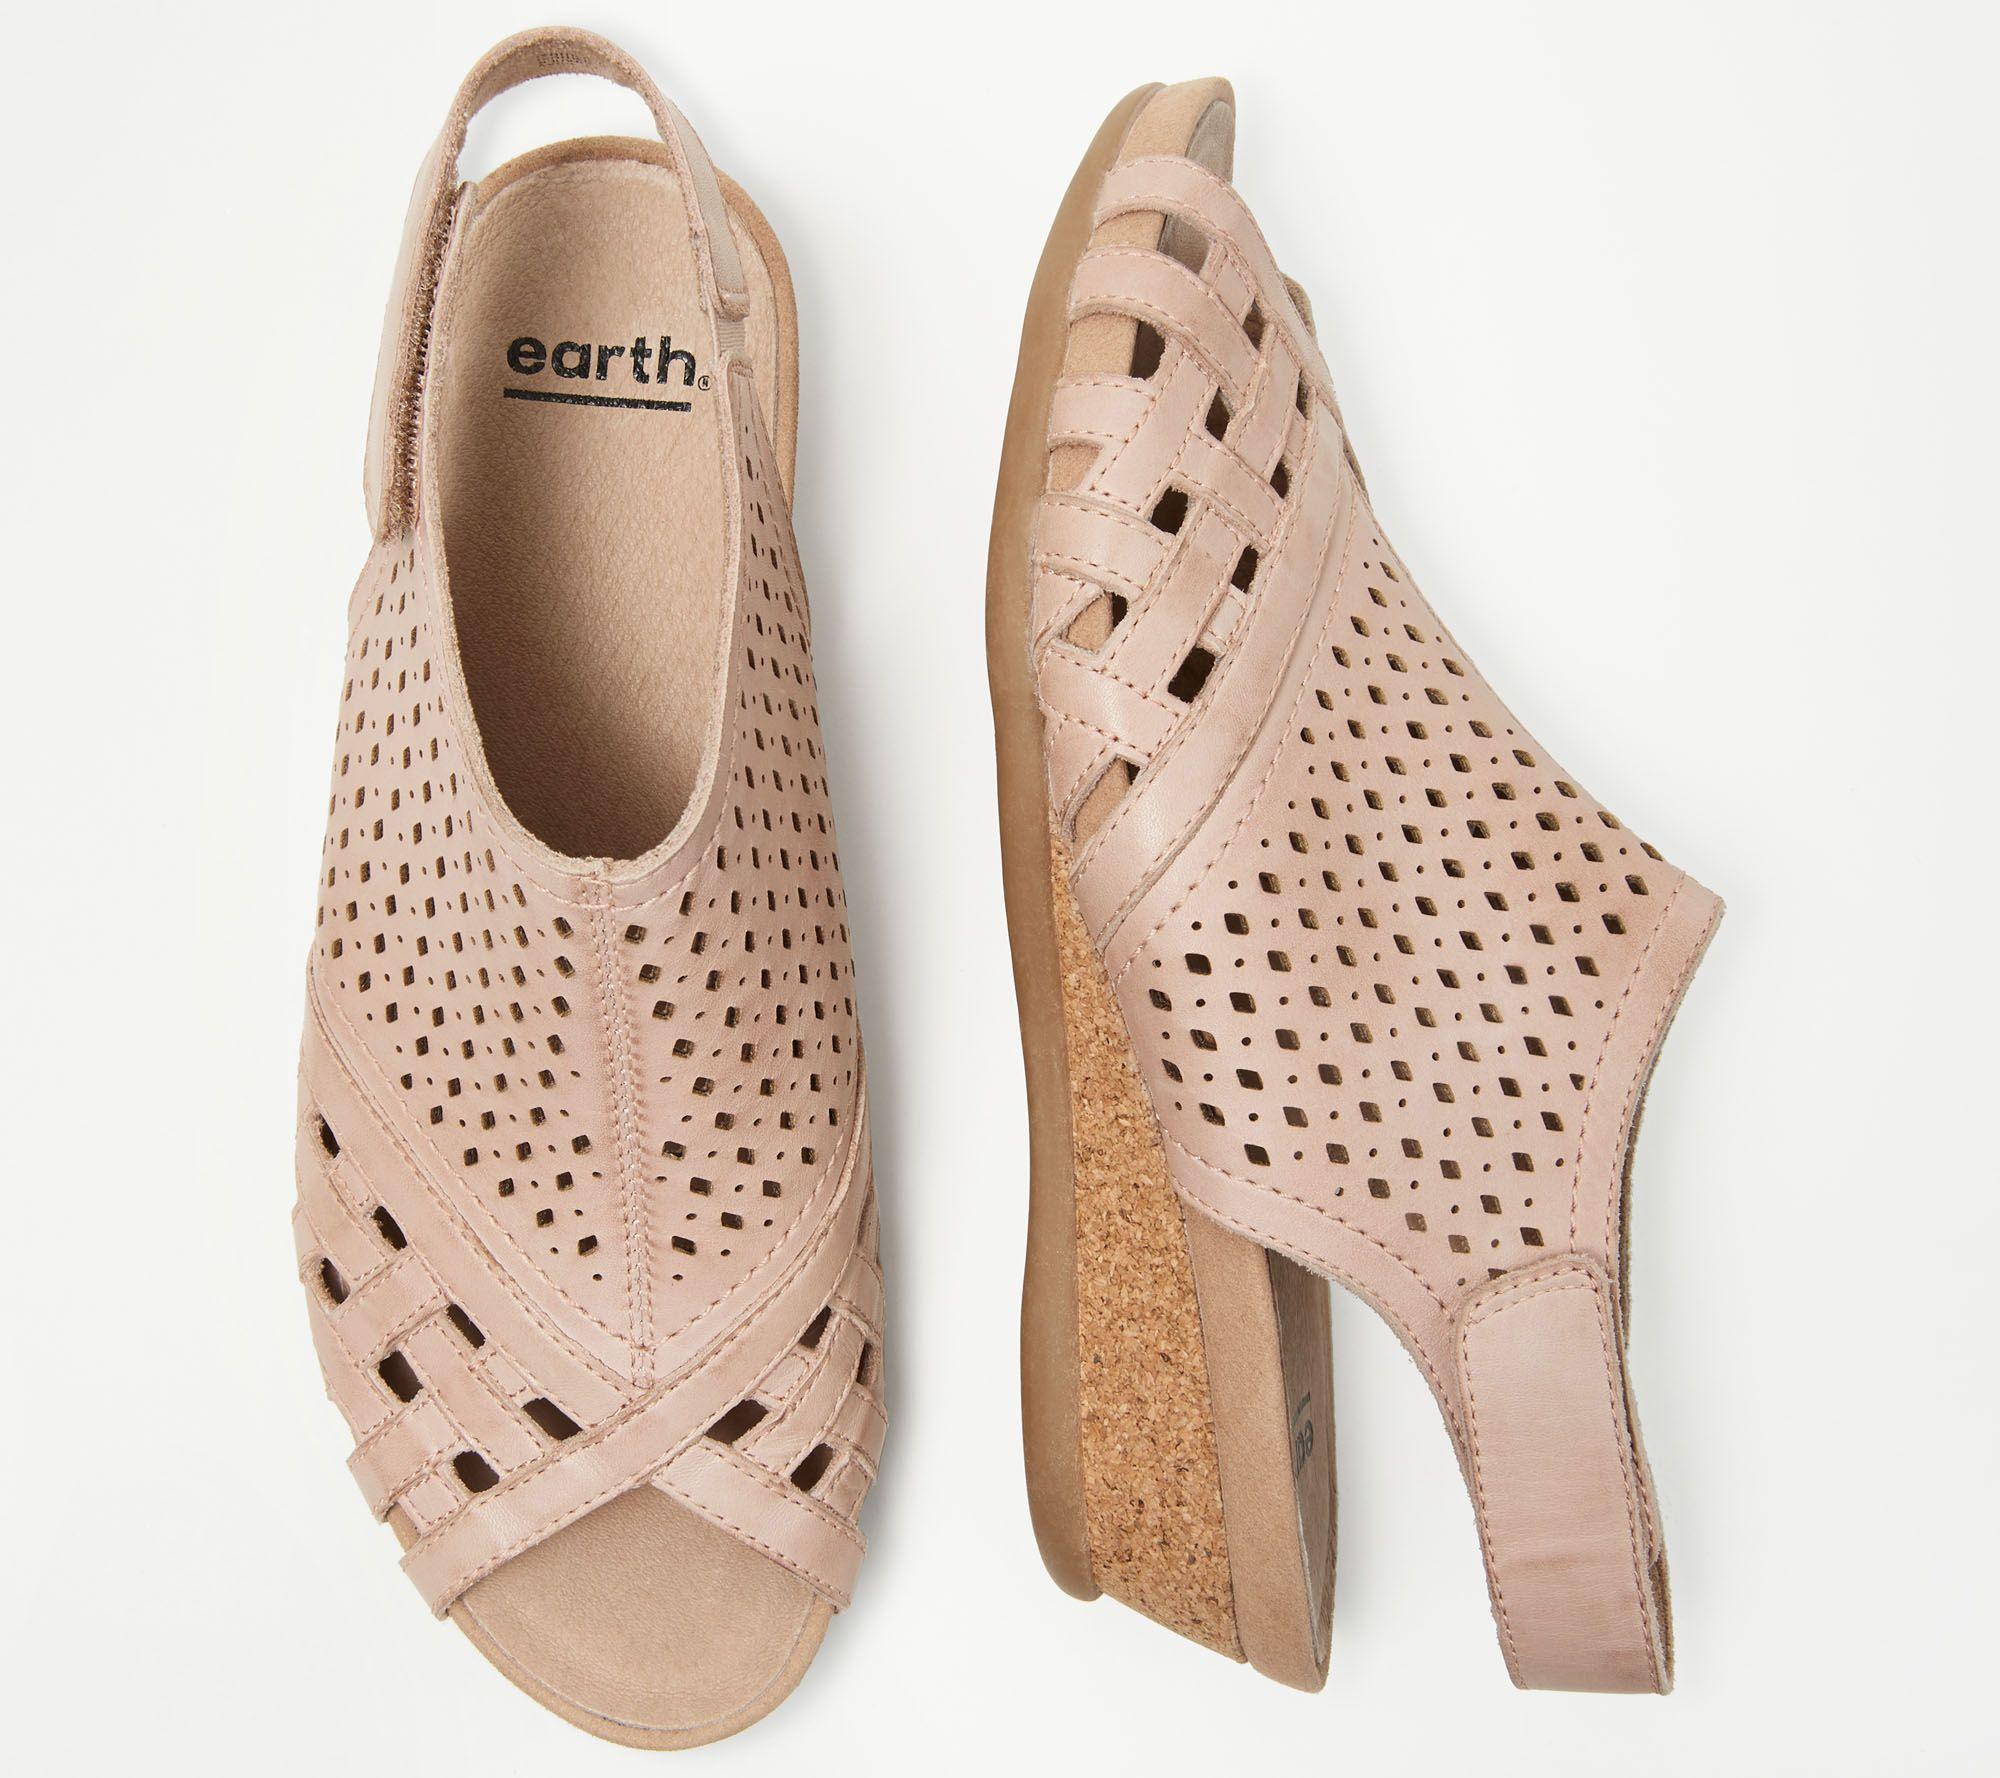 e1d9eb5122e Earth Leather Perforated Wedge Sandals- Pisa Galli - Page 1 — QVC.com